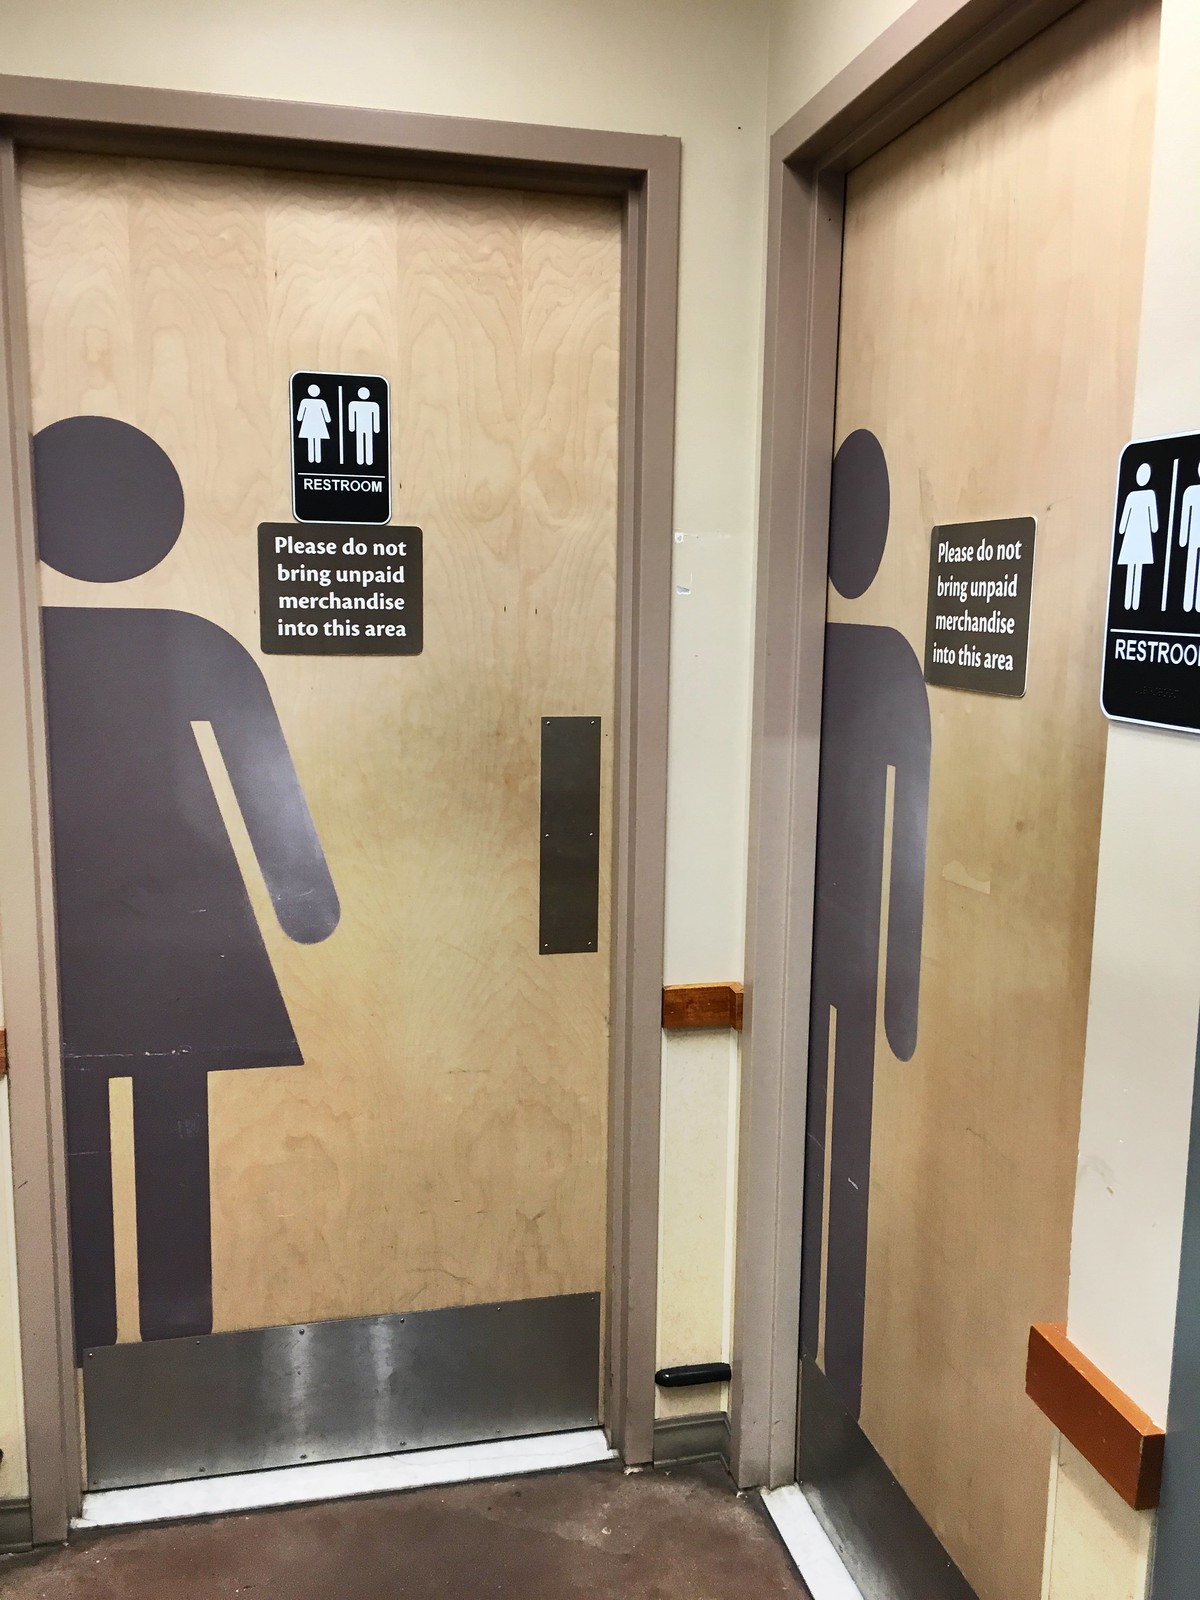 They fixed them, sort of. But not really. #safebathroomsDC GiantFood #shaw DCHumanRights